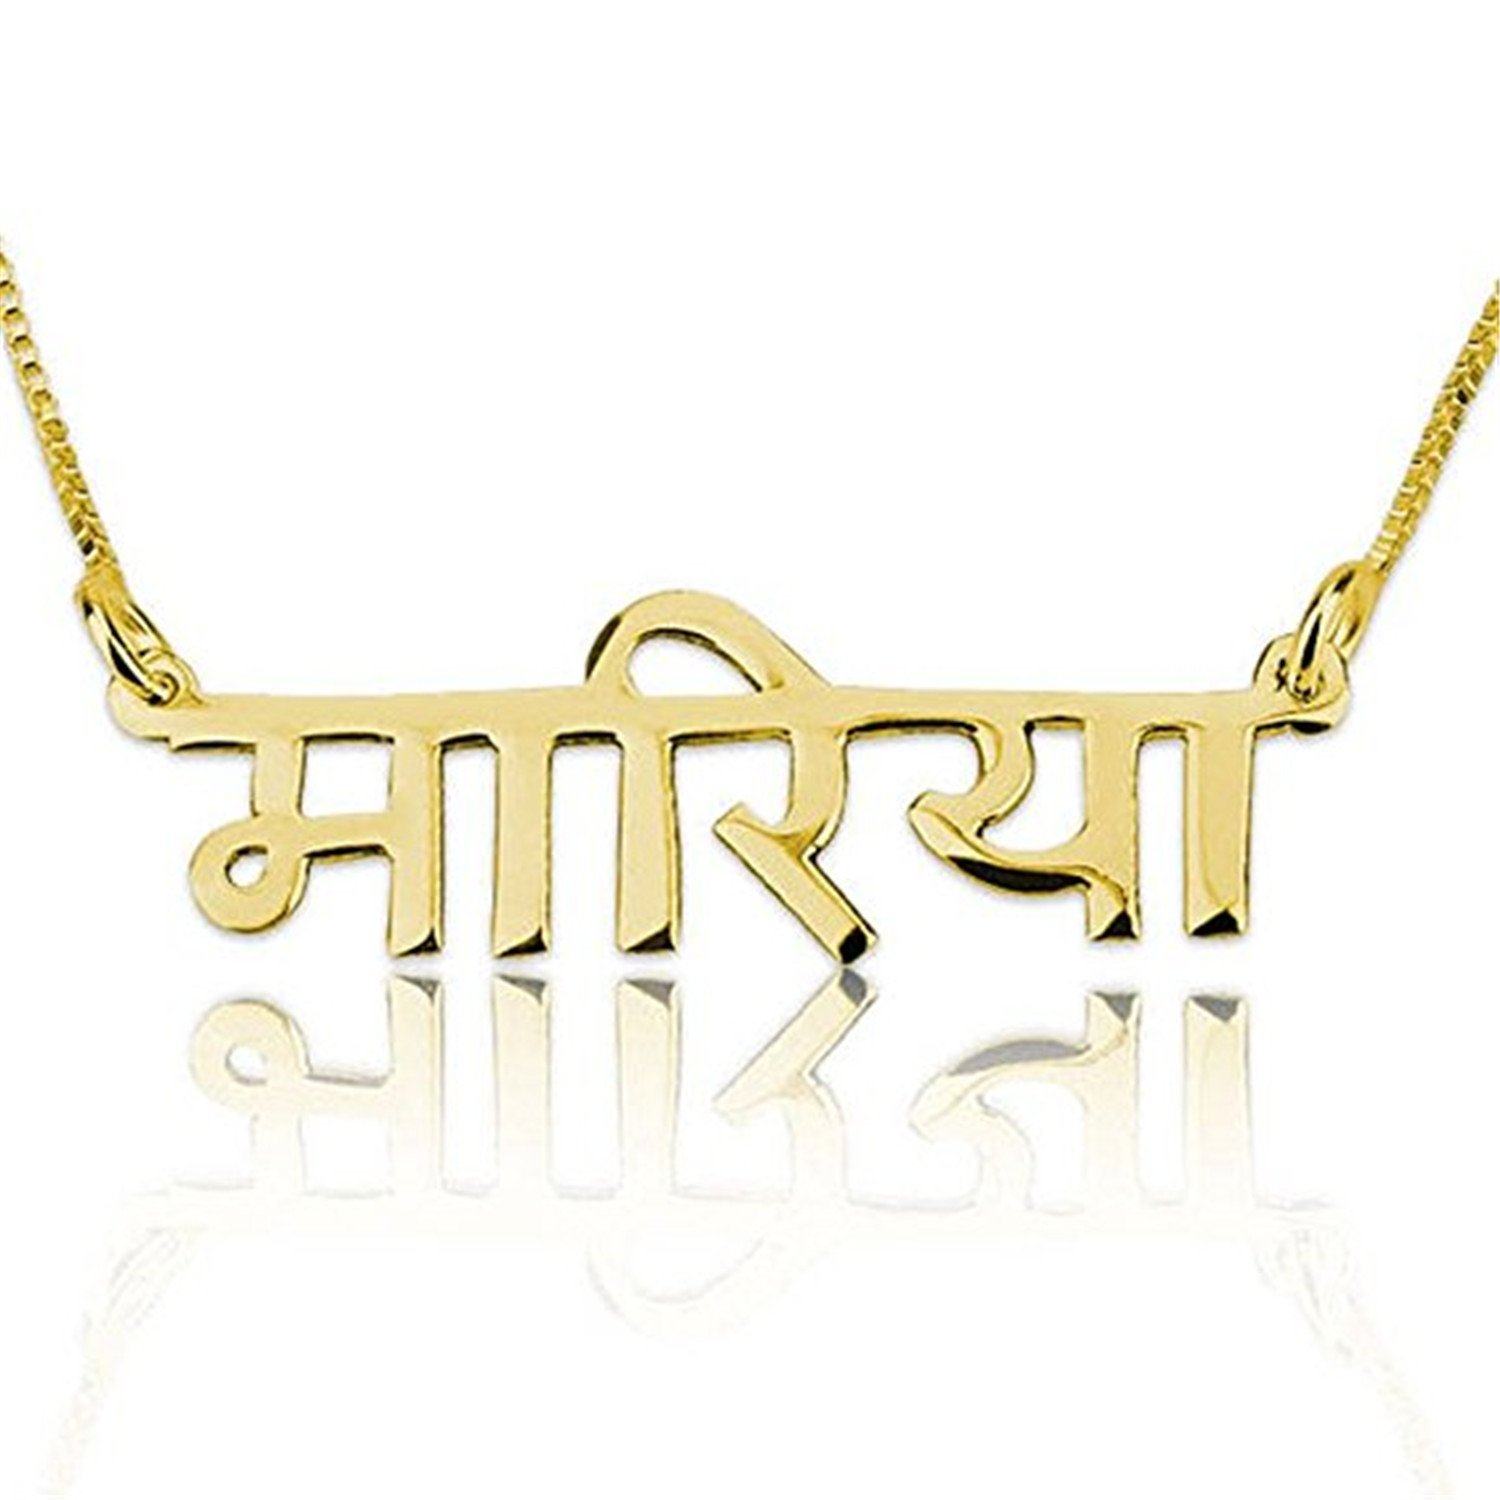 LAOFU Hindi Name Necklace,Personalized Name Necklace for Indian